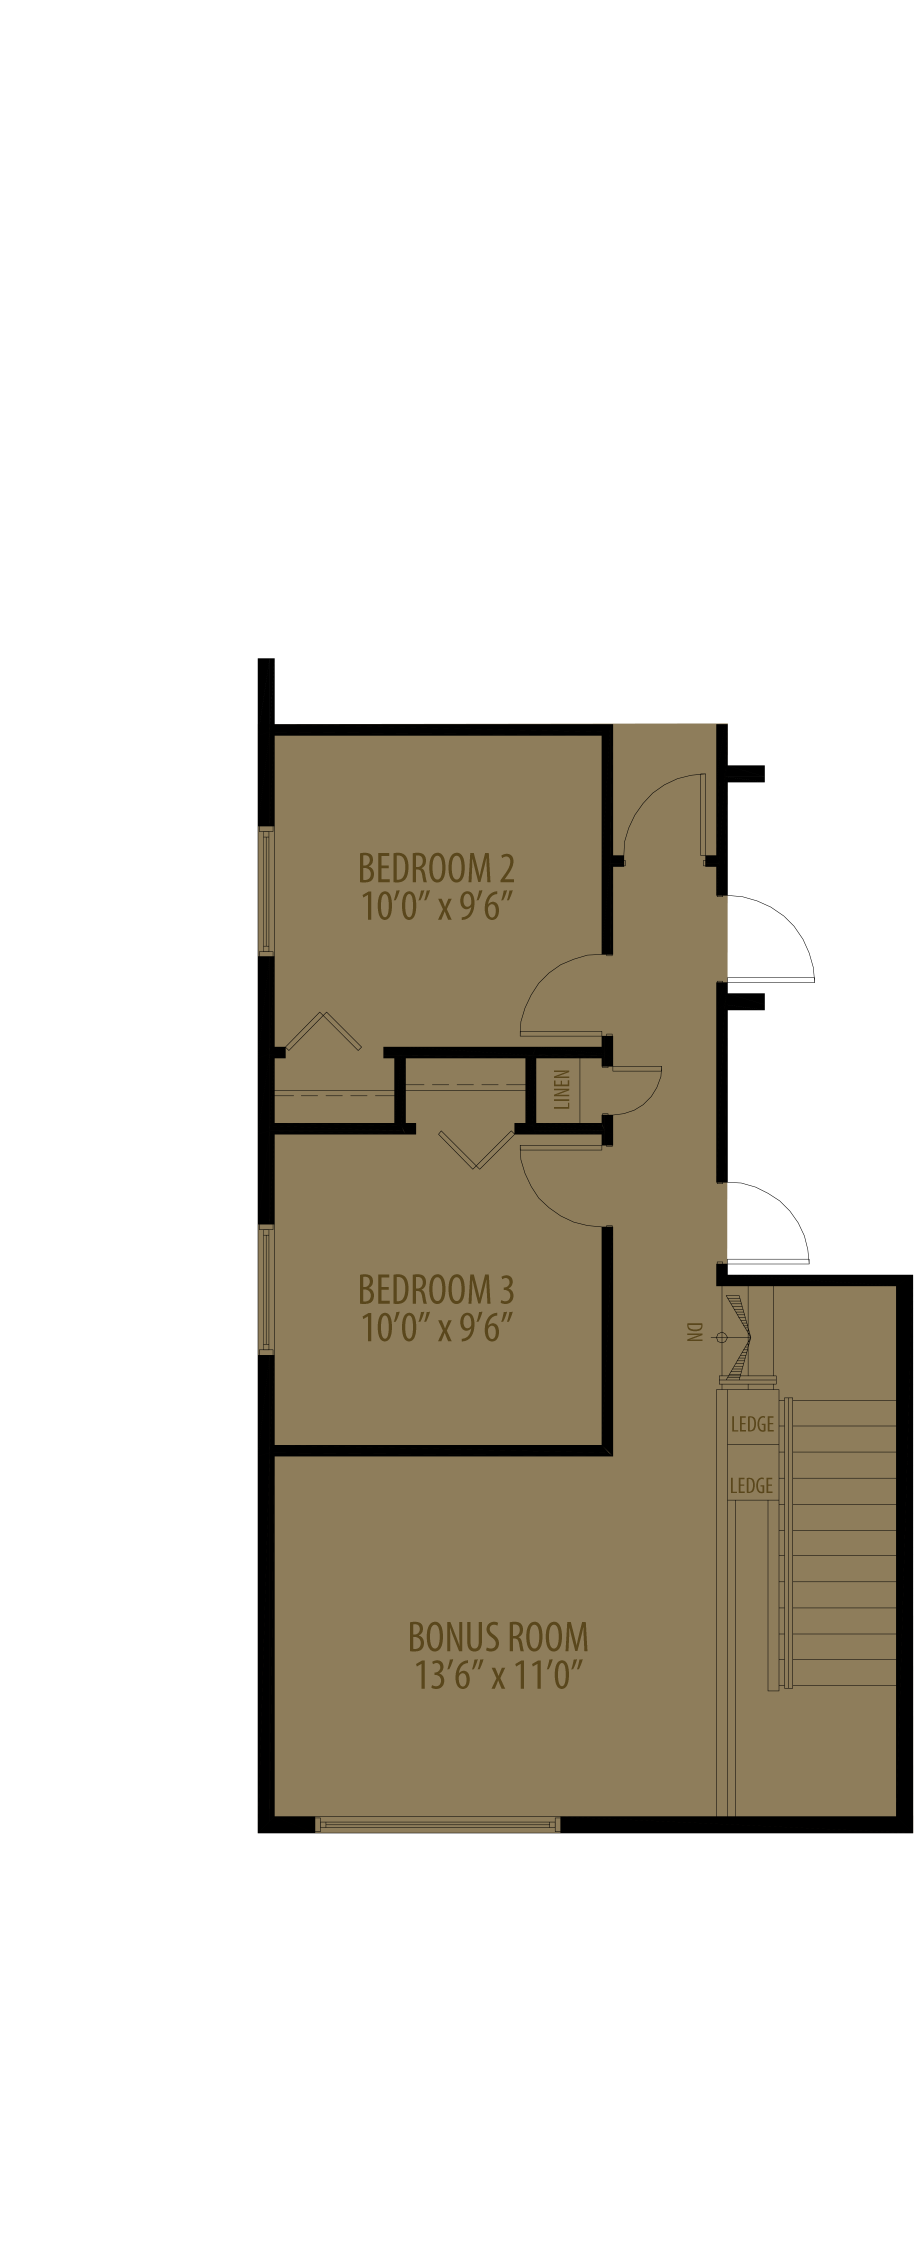 Bonus Room Adds 146 Sq Ft